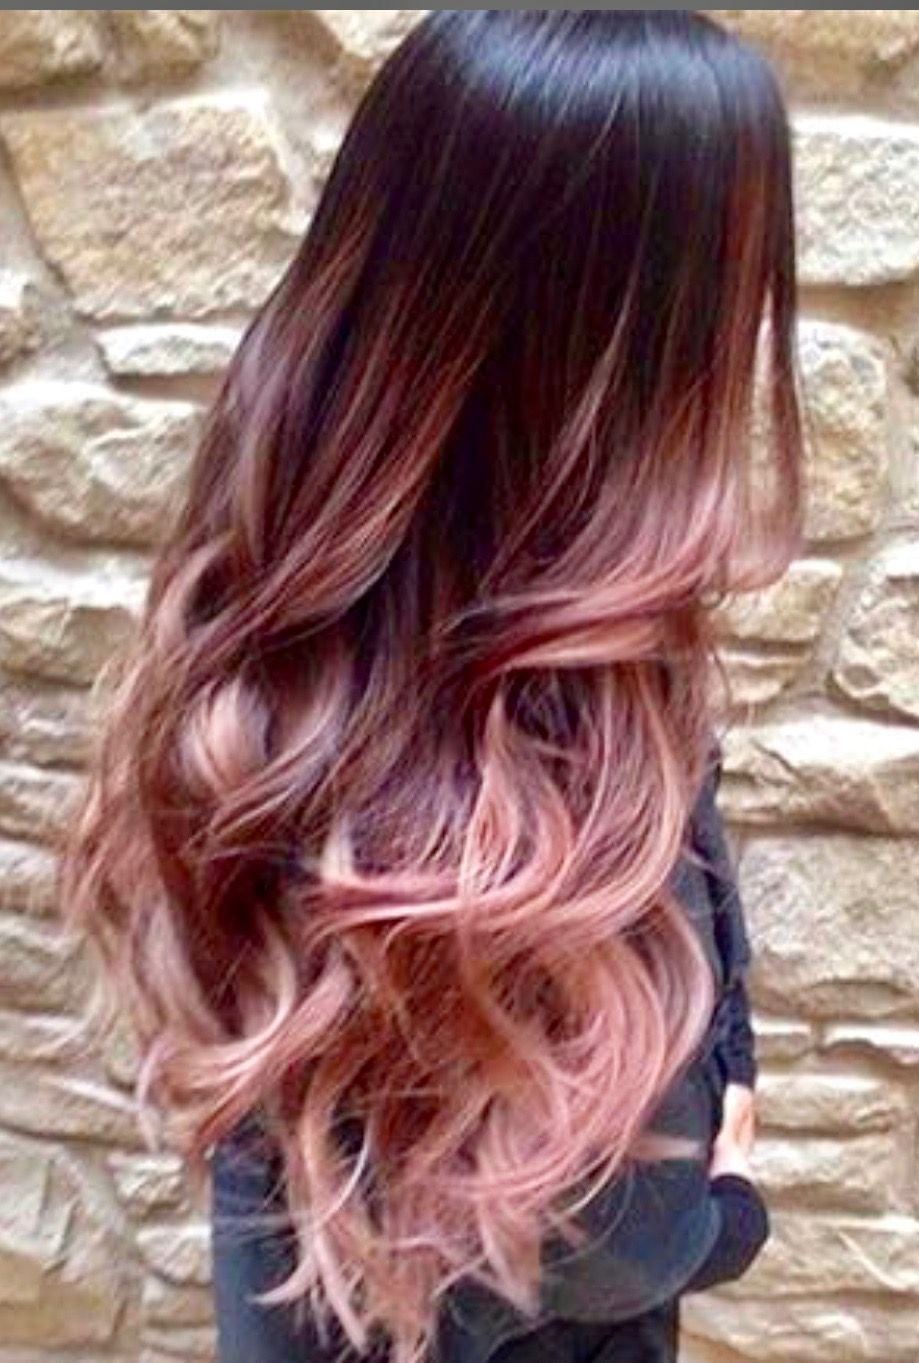 Pin by Alexis Holladay on Rose gold hair? in 2019